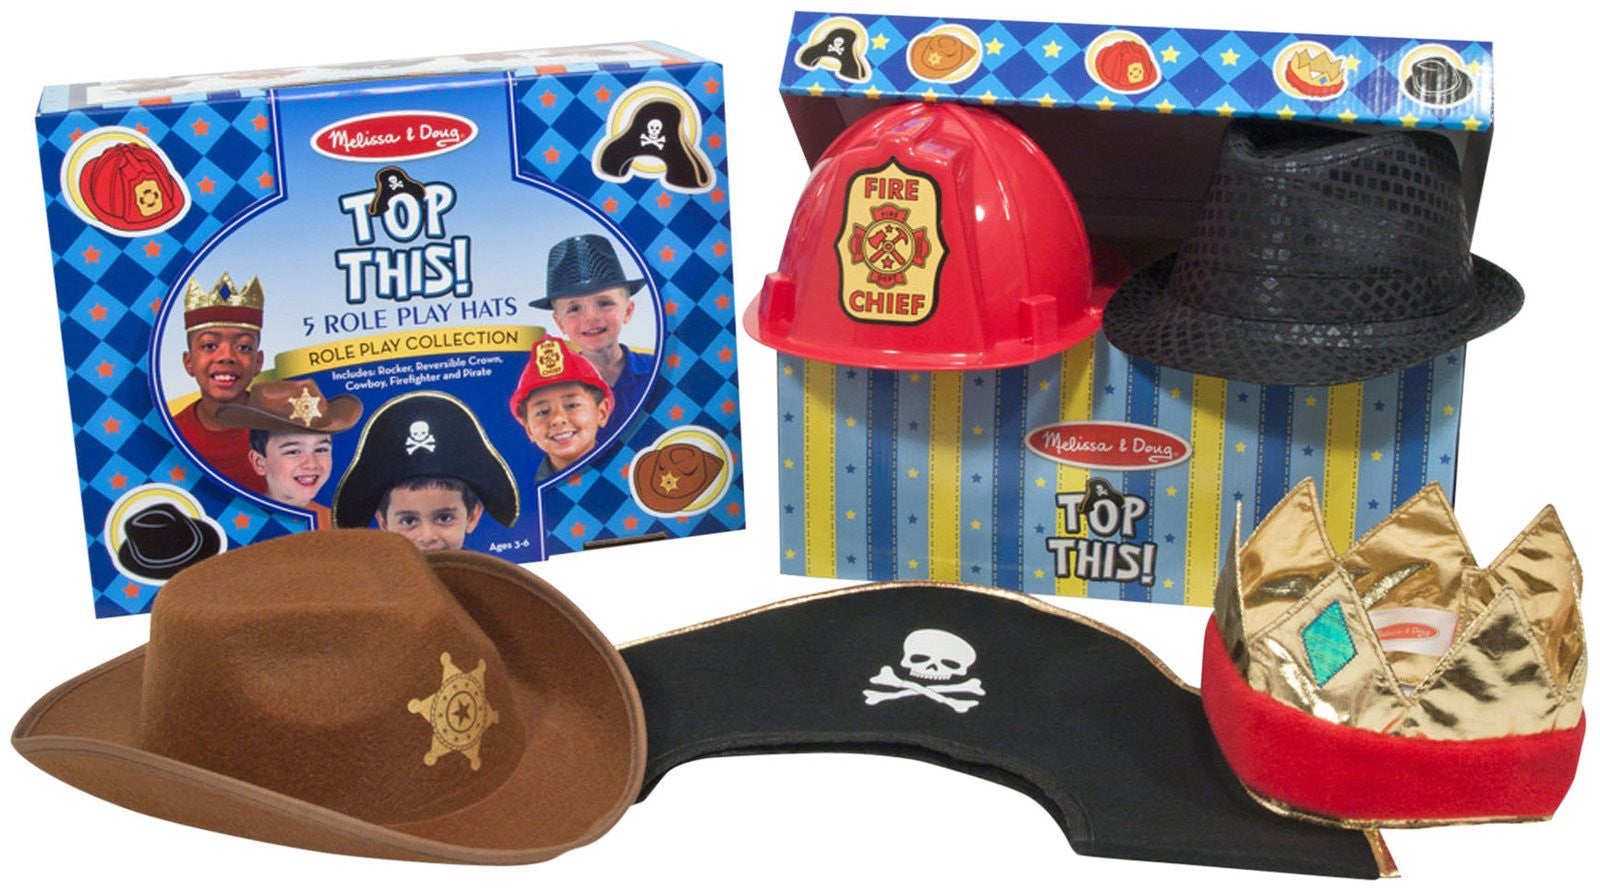 Melissa & Doug Top This! Role Play Hats-Brown/Black